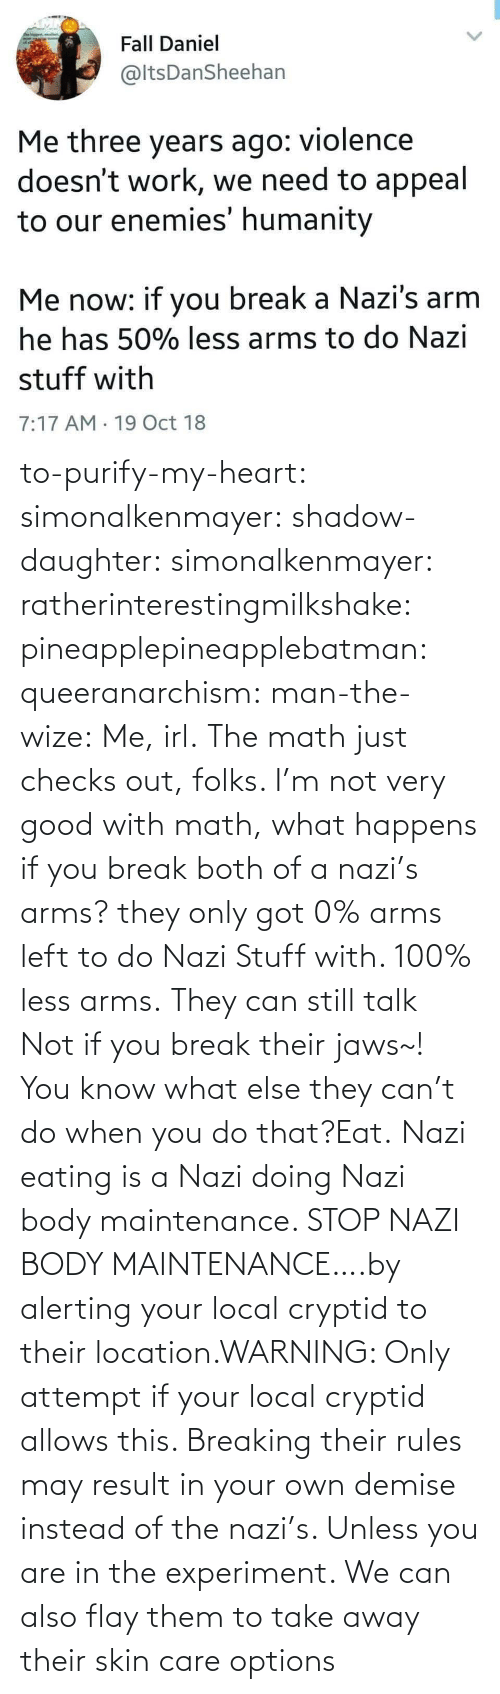 Do That: to-purify-my-heart:  simonalkenmayer:  shadow-daughter: simonalkenmayer:  ratherinterestingmilkshake:  pineapplepineapplebatman:  queeranarchism:  man-the-wize: Me, irl. The math just checks out, folks.     I'm not very good with math, what happens if you break both of a nazi's arms?  they only got 0% arms left to do Nazi Stuff with. 100% less arms.  They can still talk  Not if you break their jaws~!  You know what else they can't do when you do that?Eat.   Nazi eating is a Nazi doing Nazi body maintenance. STOP NAZI BODY MAINTENANCE….by alerting your local cryptid to their location.WARNING: Only attempt if your local cryptid allows this. Breaking their rules may result in your own demise instead of the nazi's. Unless you are in the experiment.    We can also flay them to take away their skin care options